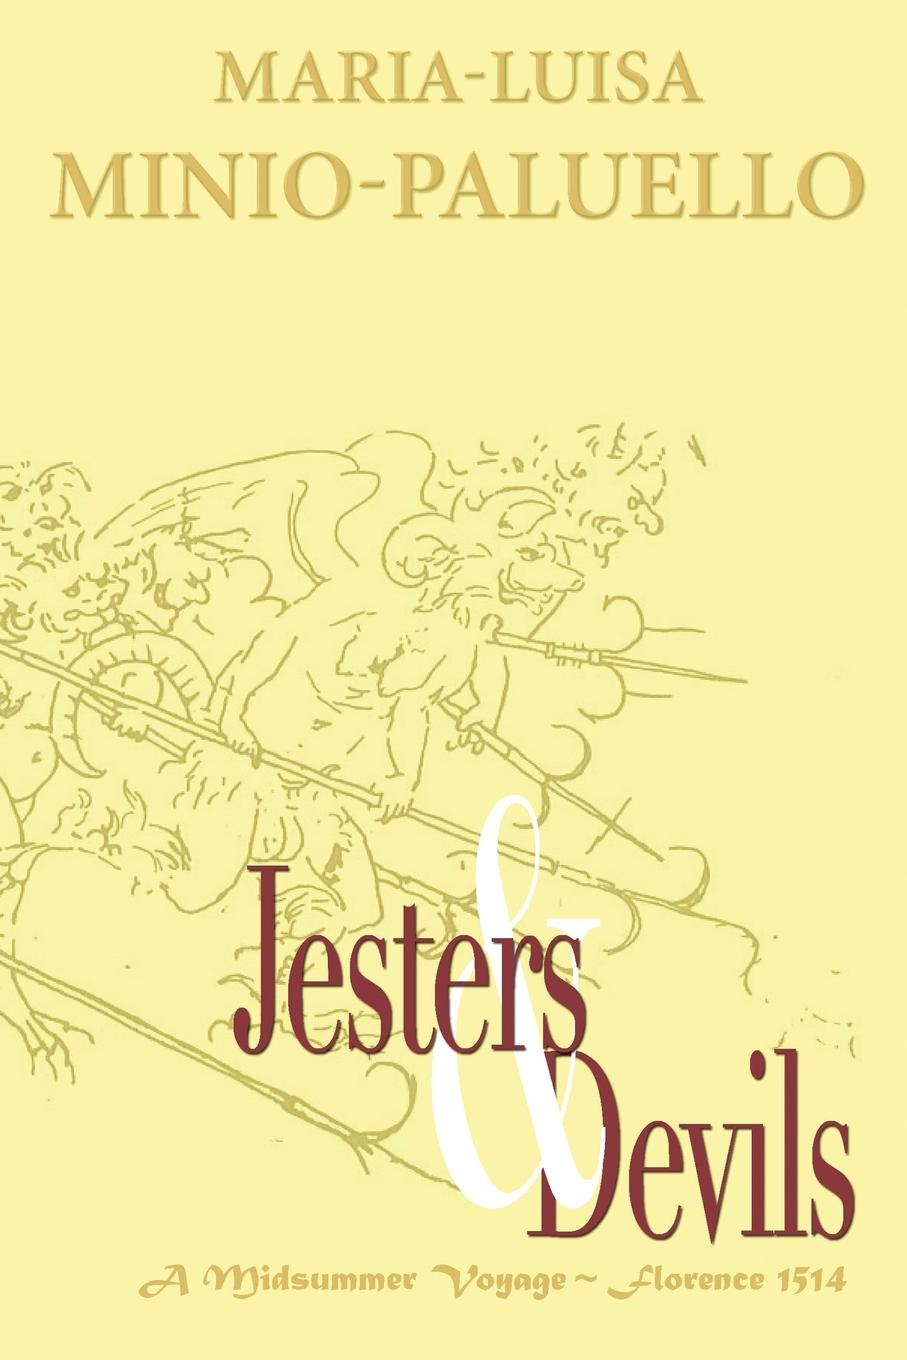 Фото - Maria-Luisa Minio-Paluello Jesters and Devils. A Venetian Ship of Fools, in Florence on a Midsummer Voyage in 1514. Is there method in this folly. medici of florence